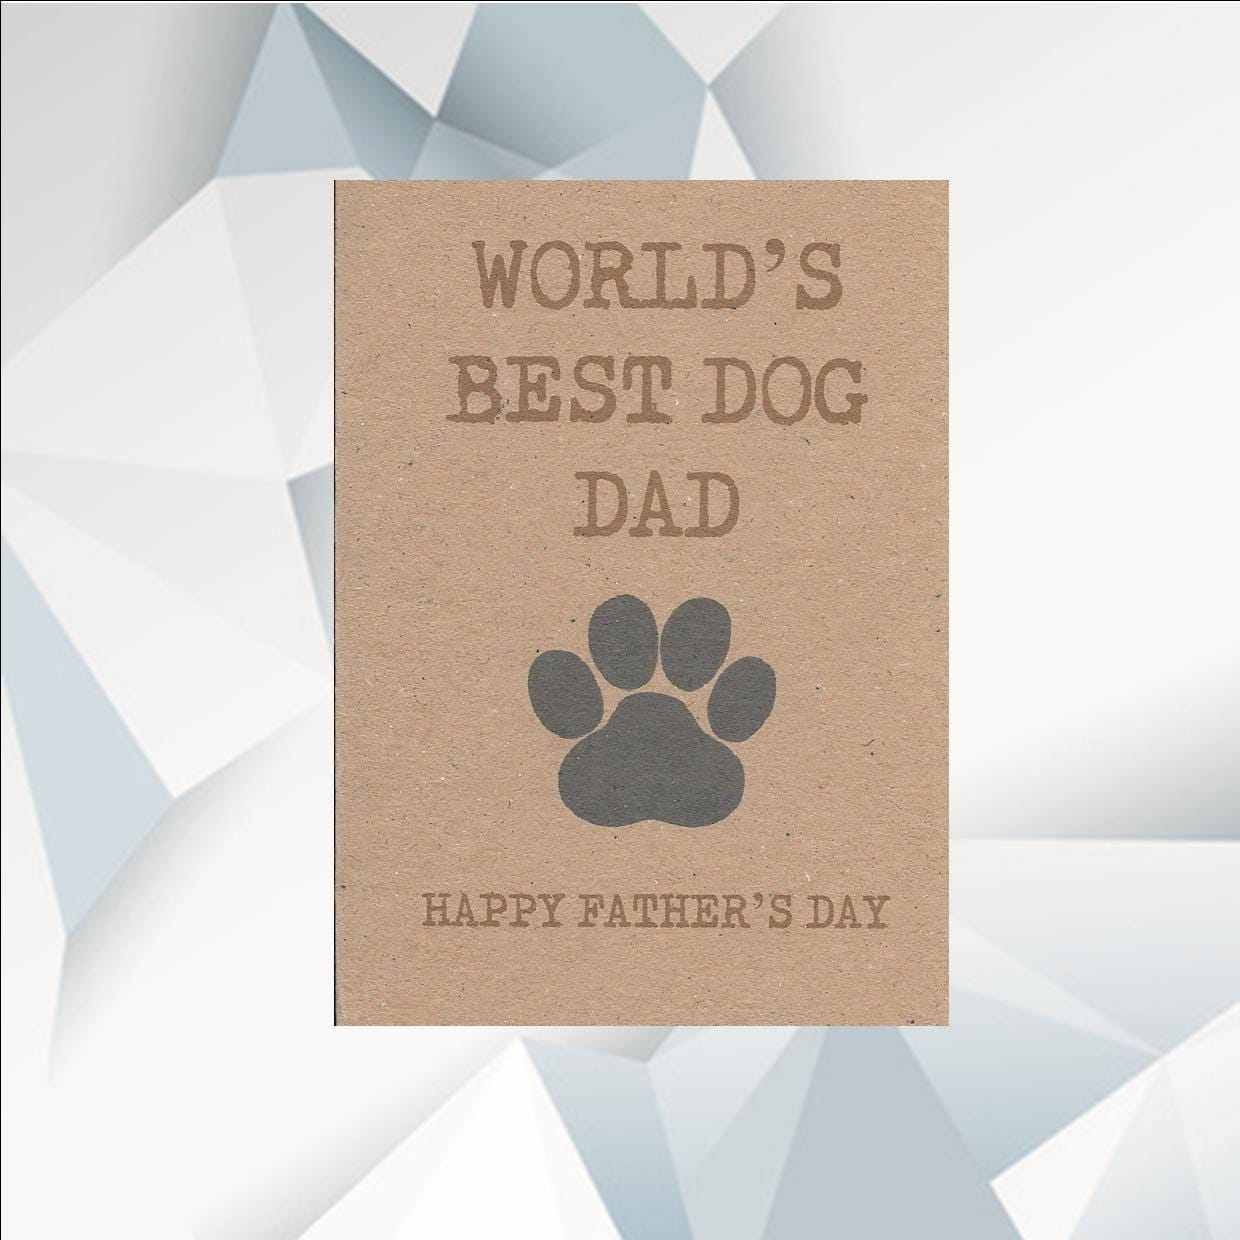 Worlds Best Dog Dad Happy Fathers Day Card Etsy